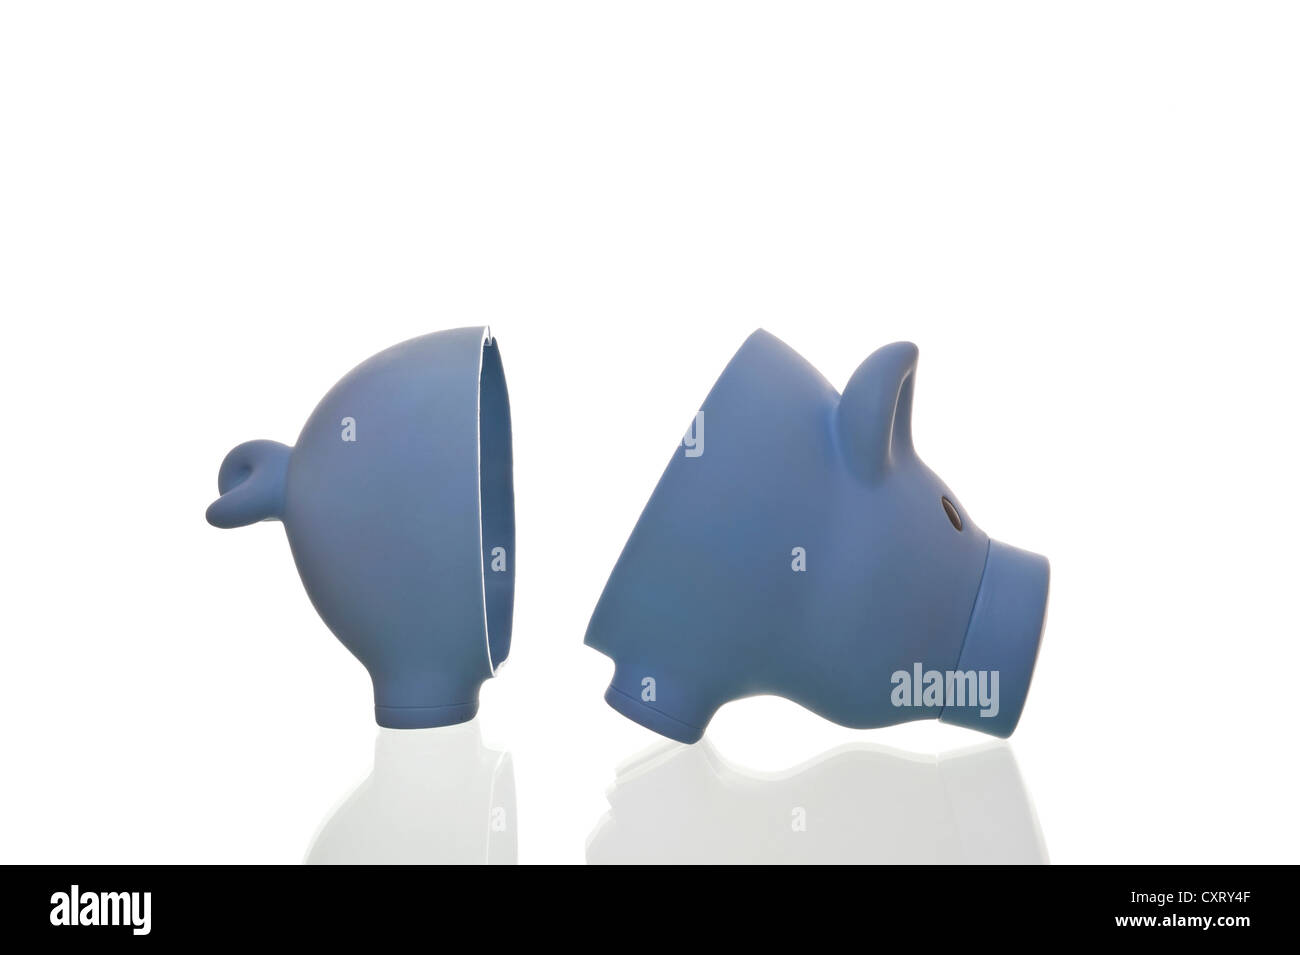 Halved piggy bank, symbolic image - Stock Image